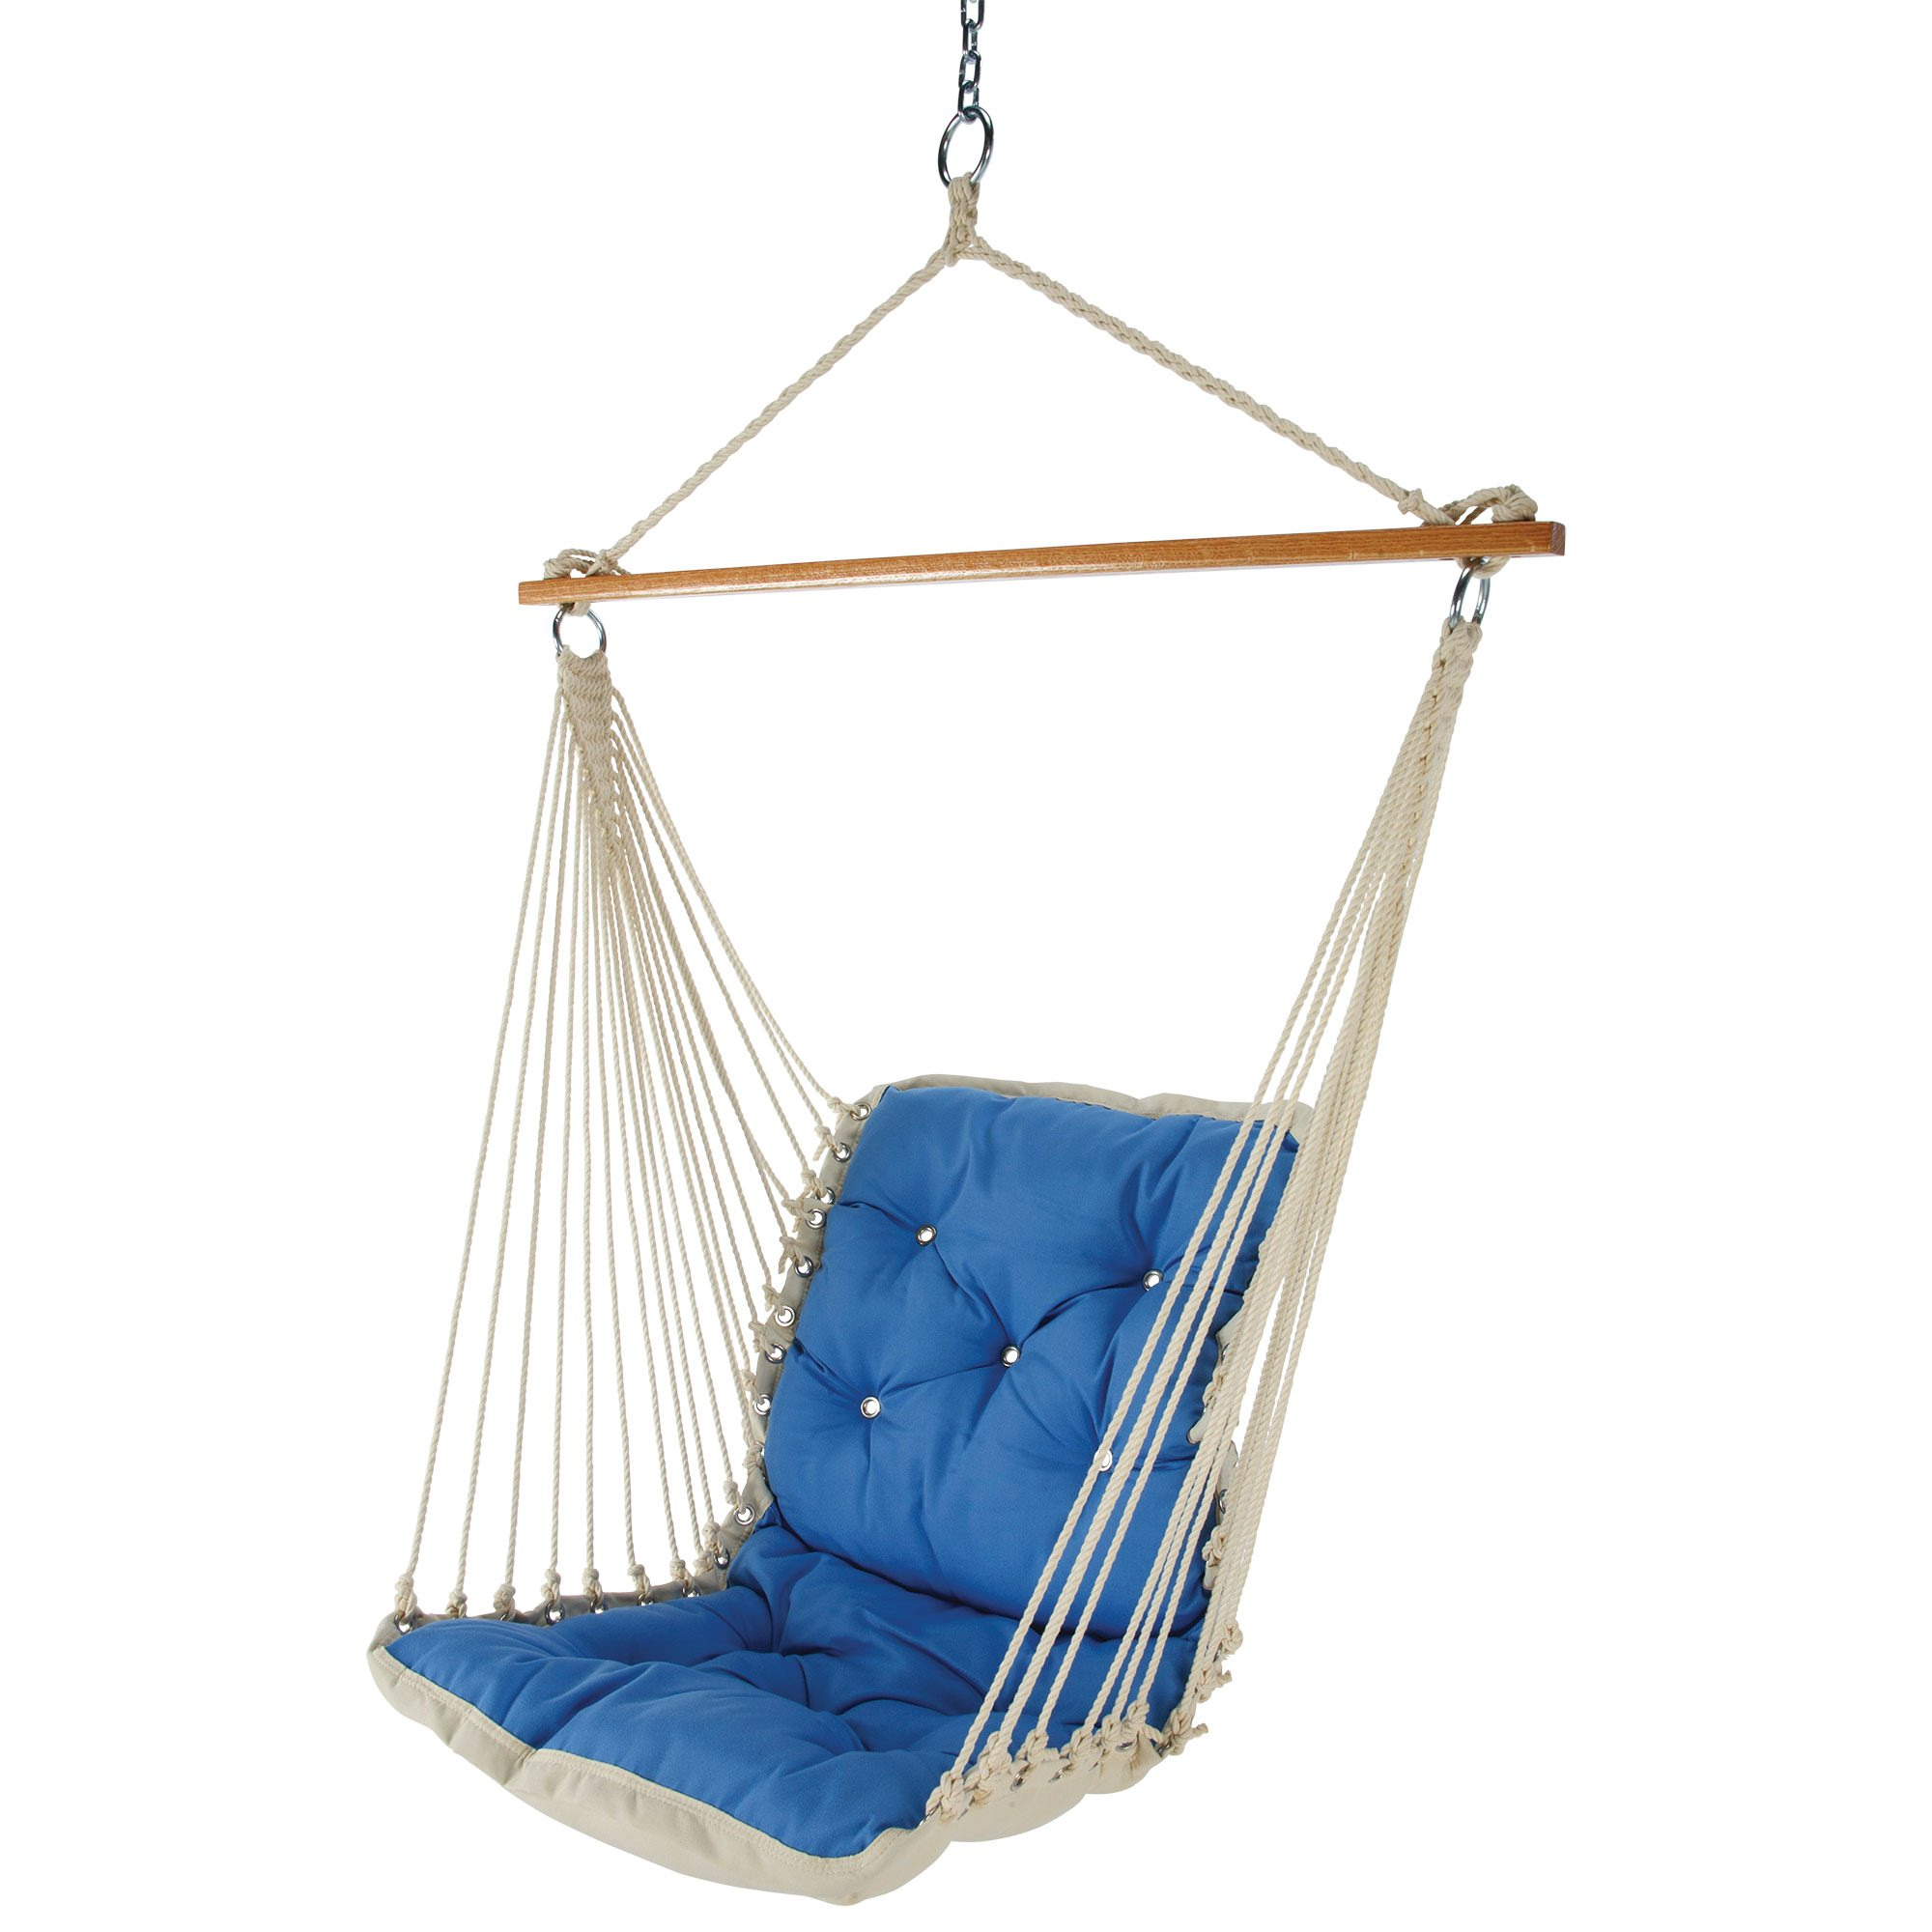 single person hammock chair darvis leather recliner club brown christopher knight home tufted swing canvas capri tssmn2 hatteras